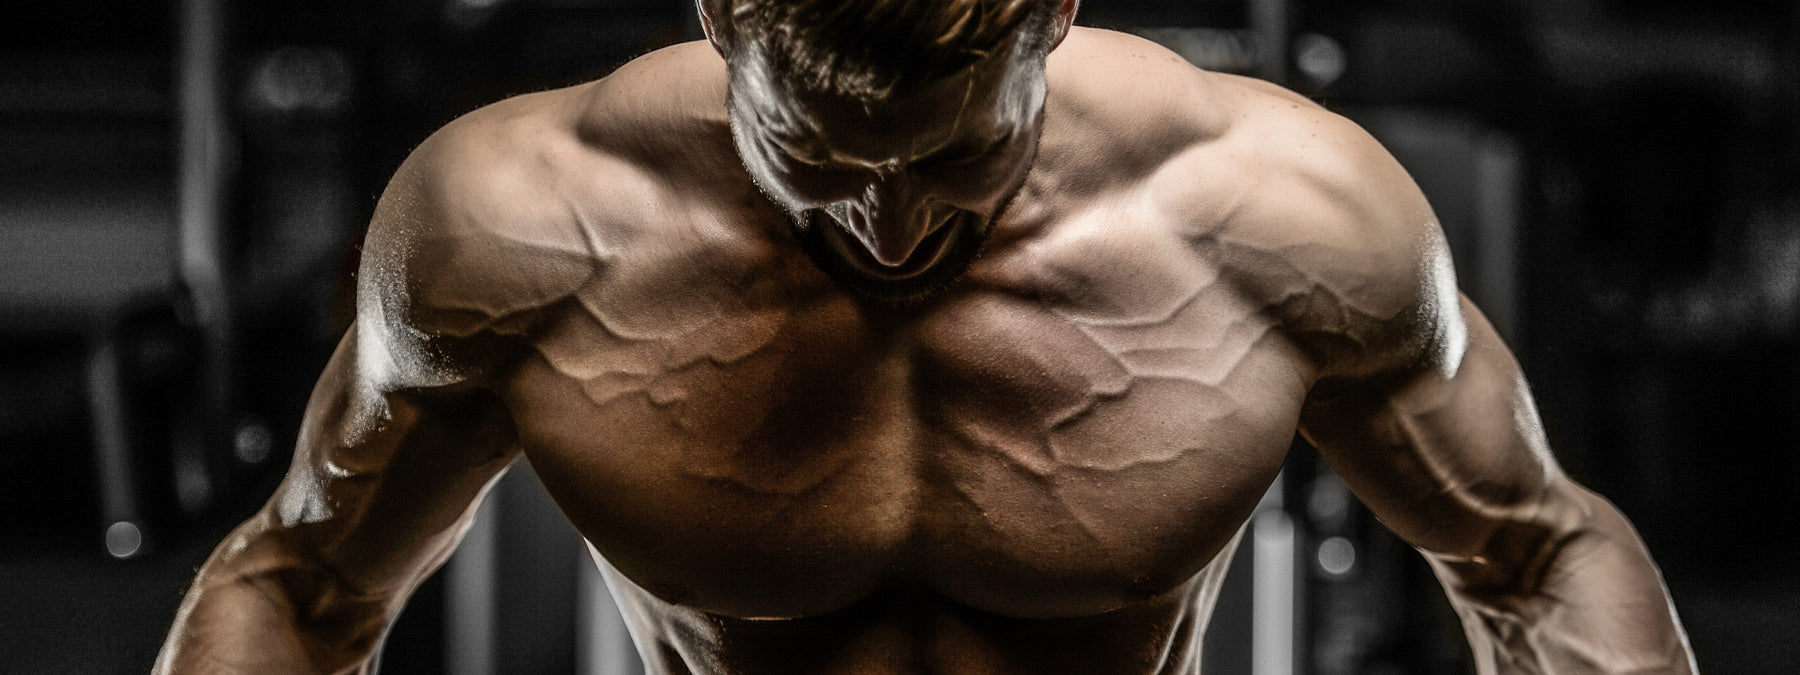 6 Chest Growth Exercises You Need to Try